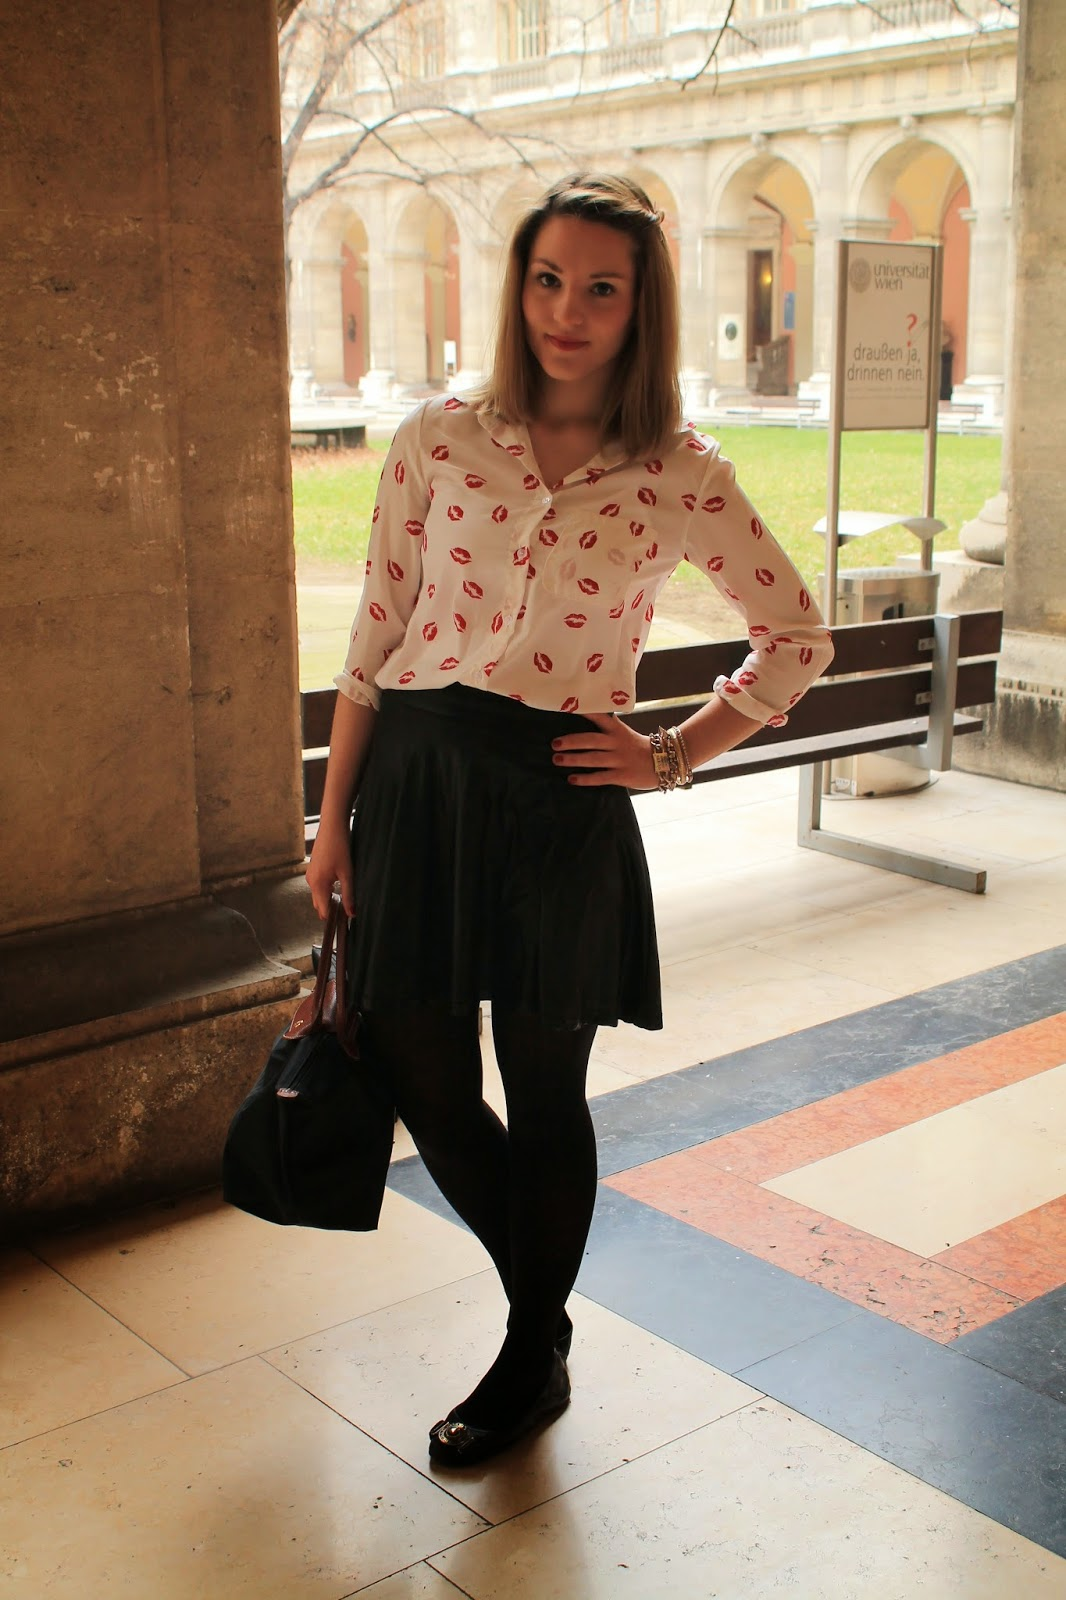 Fashiobnlogger Austria Österreich Kärnten Carinthia KLagenfurt Wien Vienna Streetstyle Style Outfit Look Black Leather Skirt Burberry Ballerinas black Flats Longchamp Le Bliage Persunmall Red Kisses Blouse College University Uni Wien Juridicum